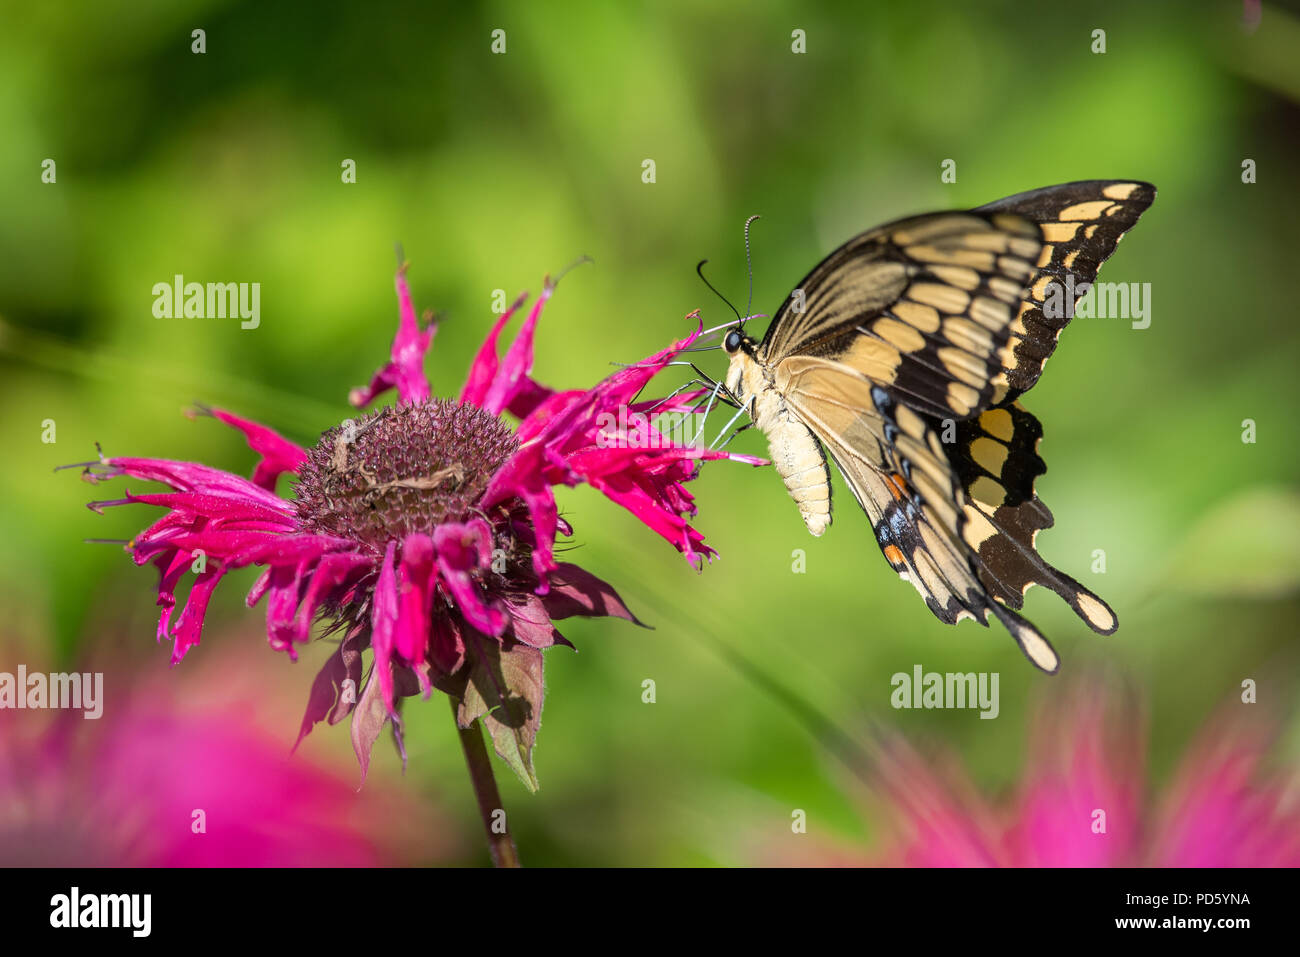 Giant swallowtail butterfly (Papilio cresphontes) feeding on red monarda or bee balm flowers in the garden in Speculator, New York NY USA. - Stock Image